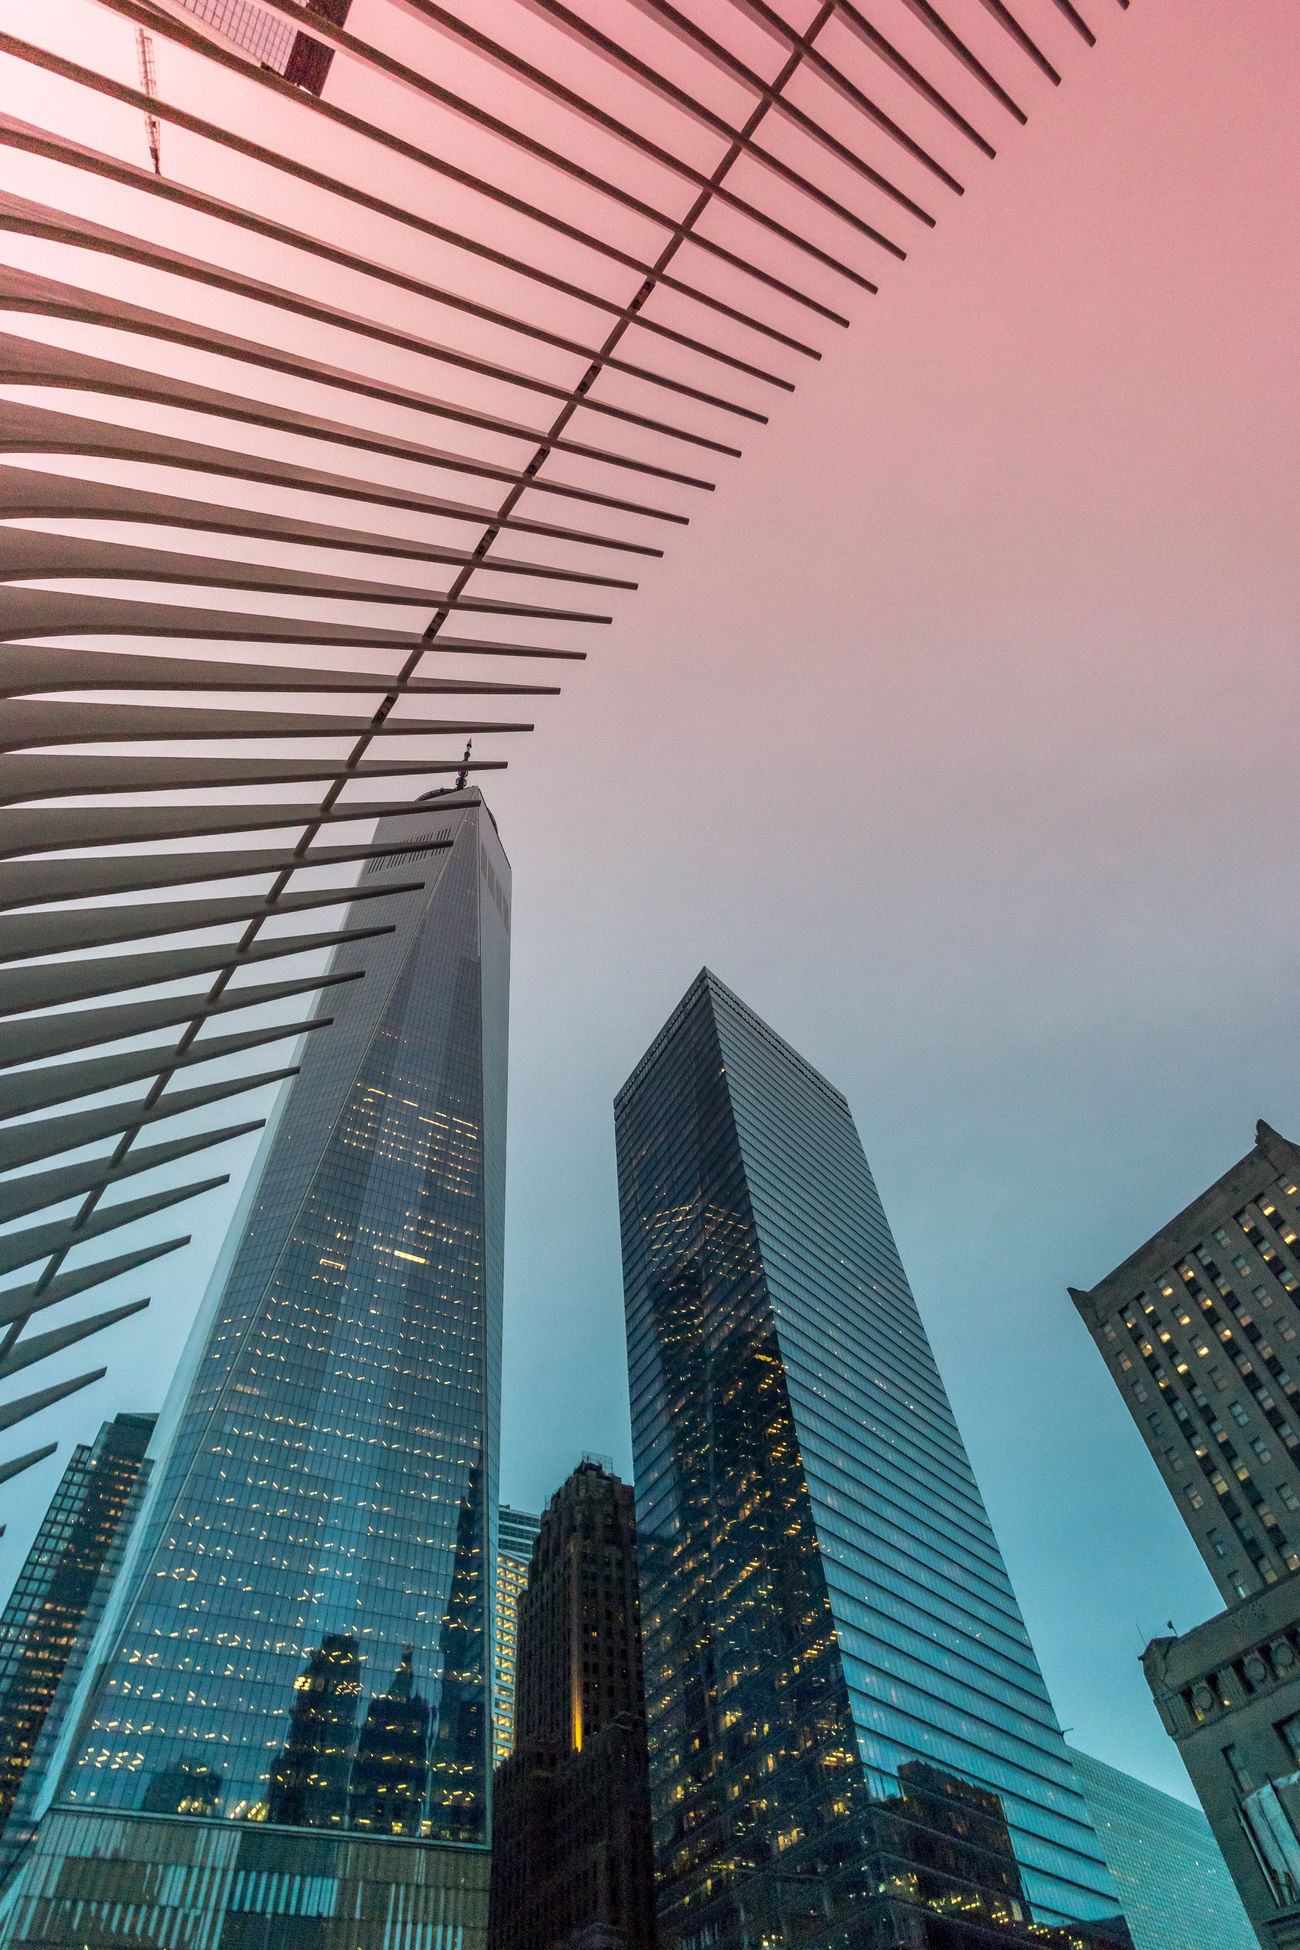 Lines Architecture Building Exterior Built Structure Calatrava City Cityscape Day Low Angle View Modern No People Outdoors Sky Skyscraper Tall